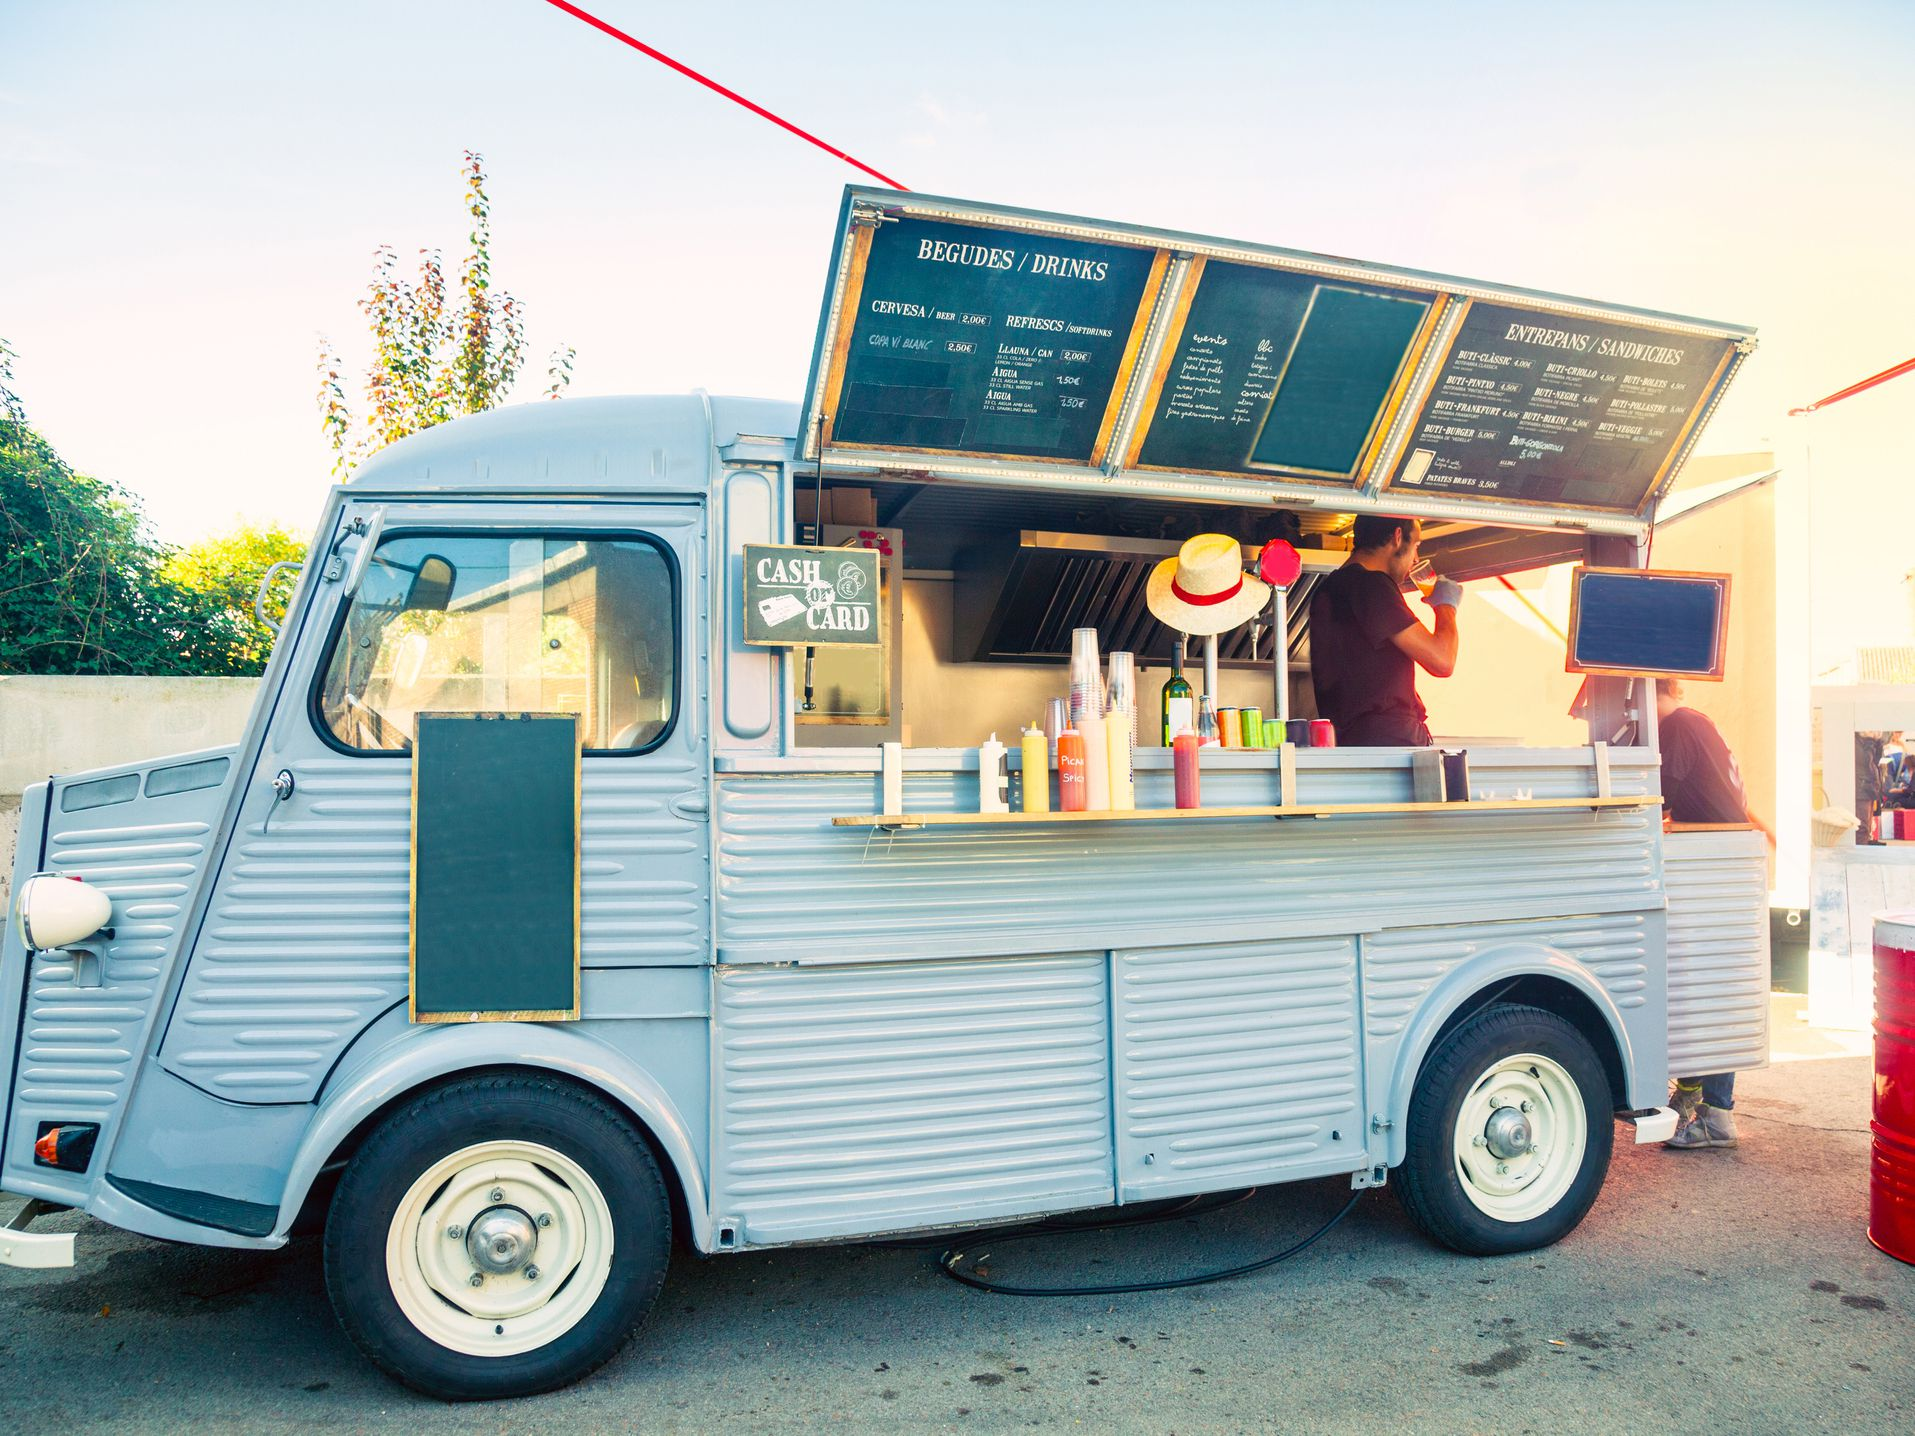 Why taking service from a NY food truck beneficial? post thumbnail image